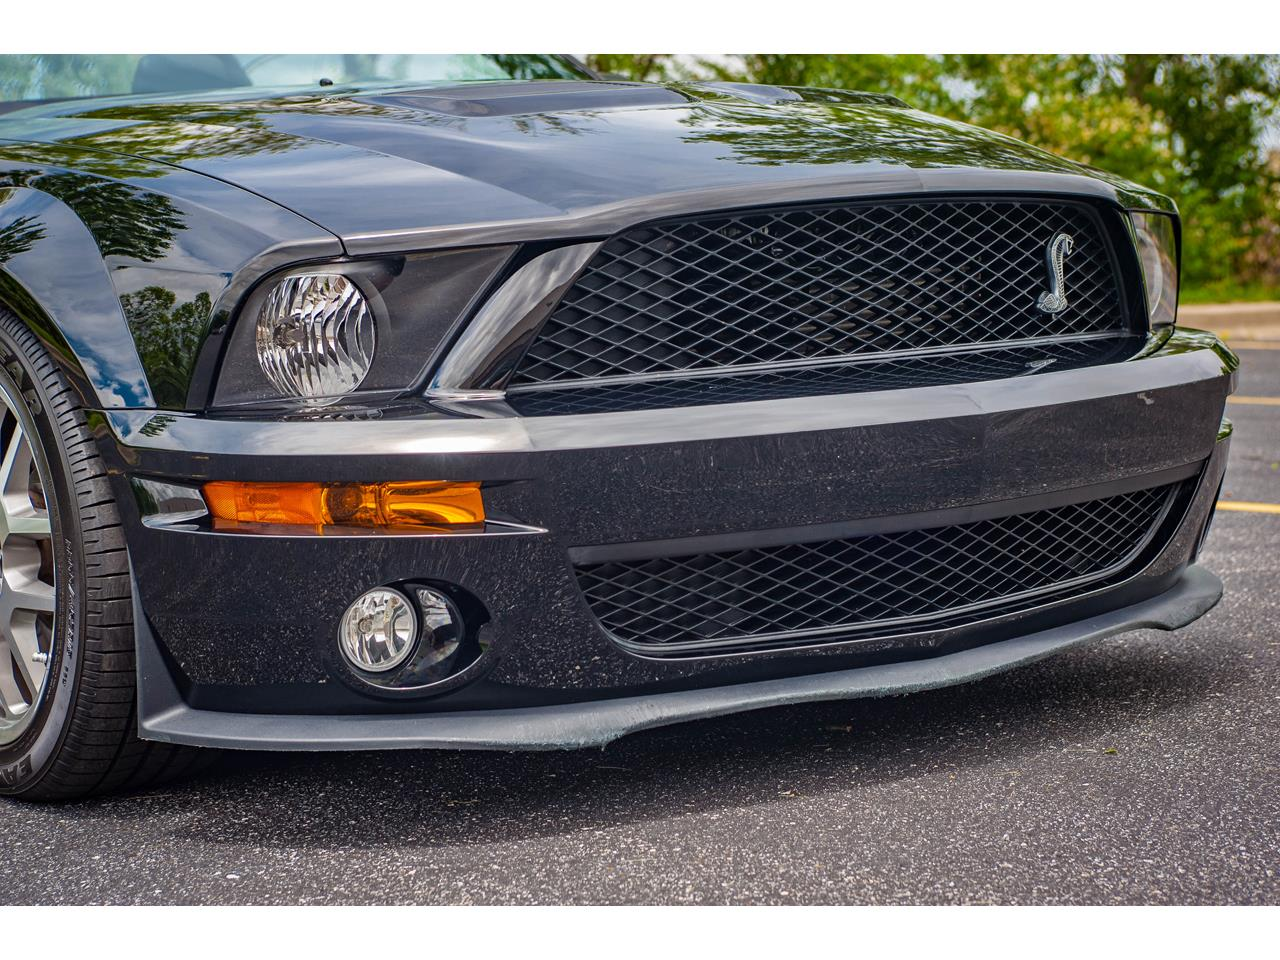 Large Picture of 2007 Ford Mustang located in O'Fallon Illinois - QB98